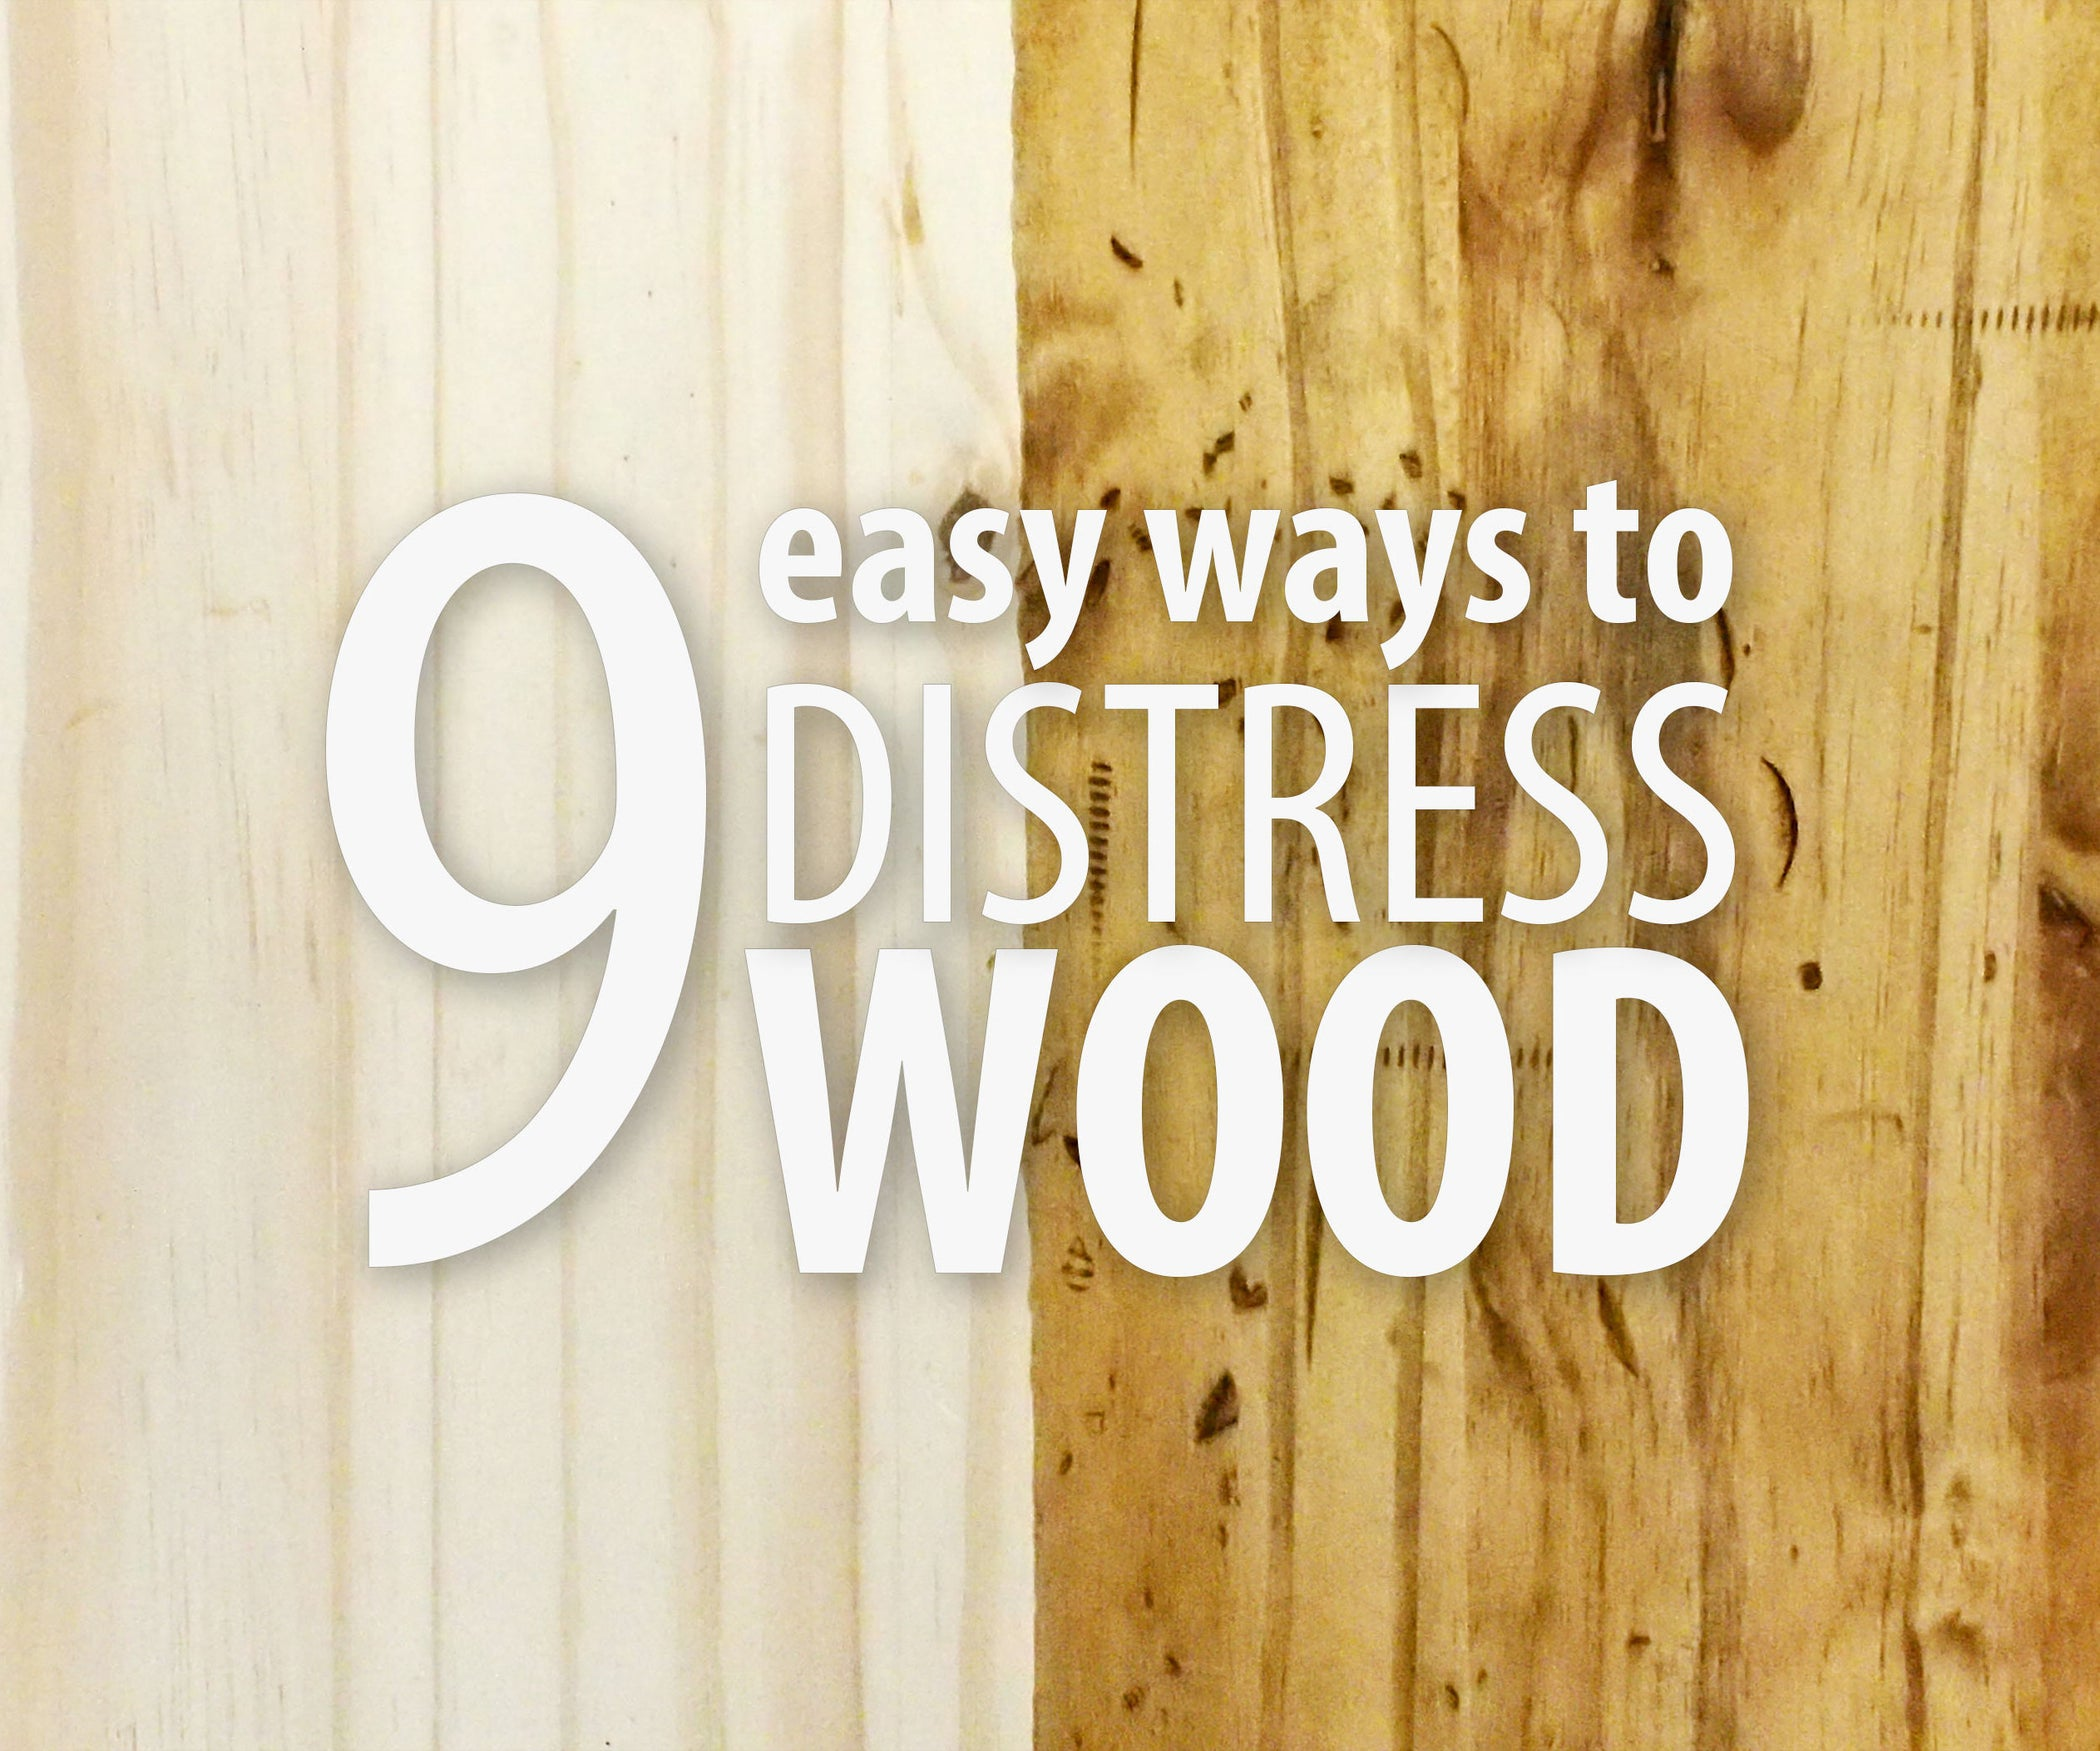 9 Easy Ways to Distress Wood: 9 Steps (with Pictures)